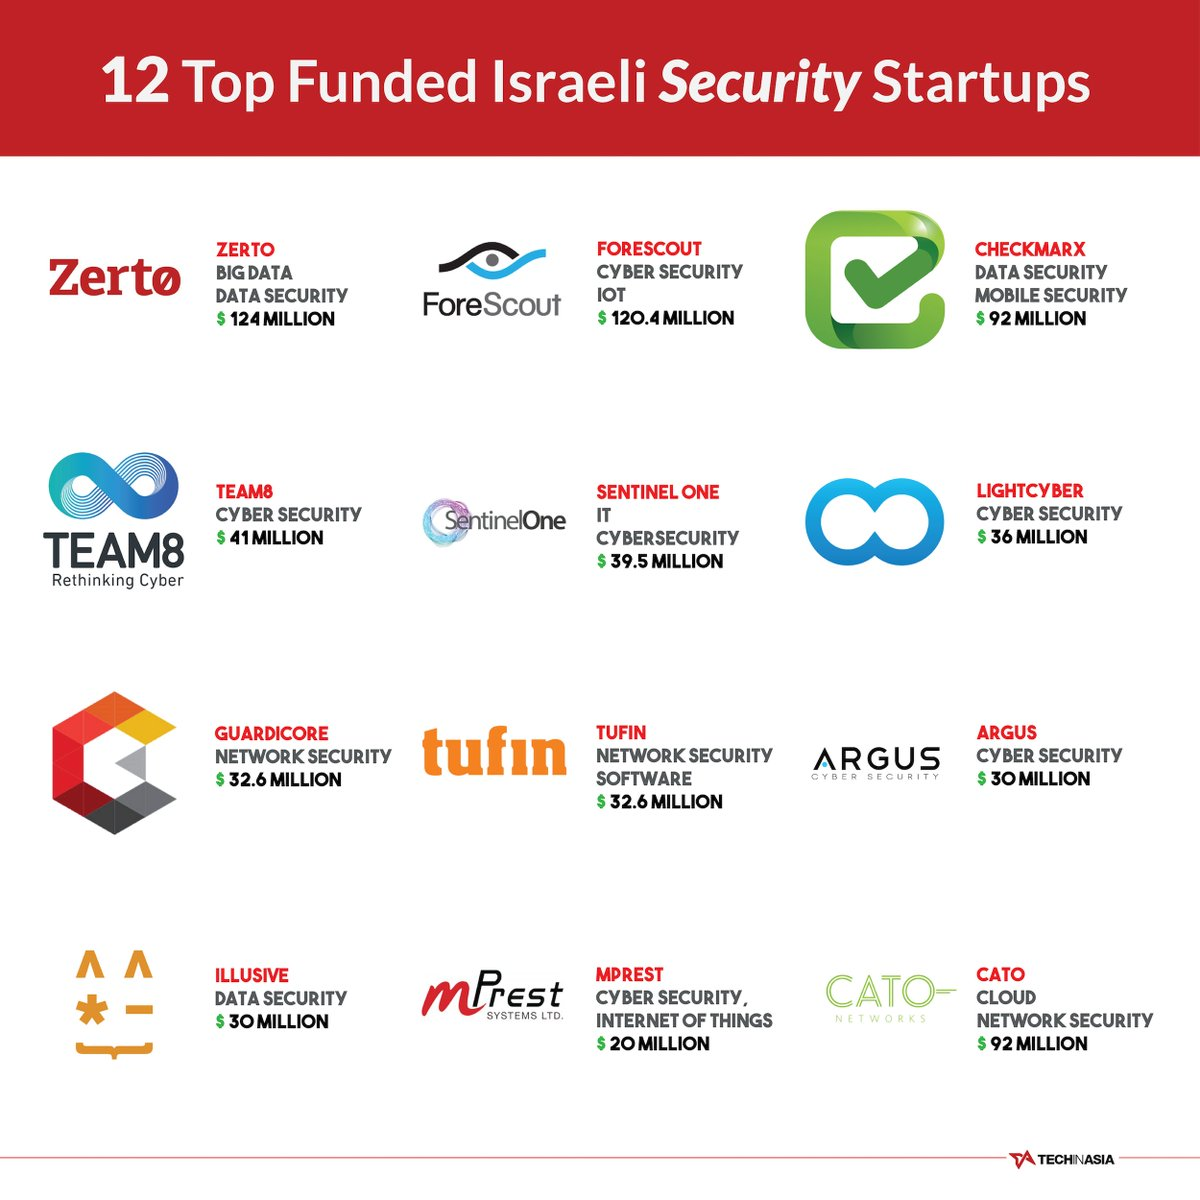 IT Security has always been a strong suit amongst Israel's startups. How many of these companies do you know? https://t.co/VVbIiu28dD